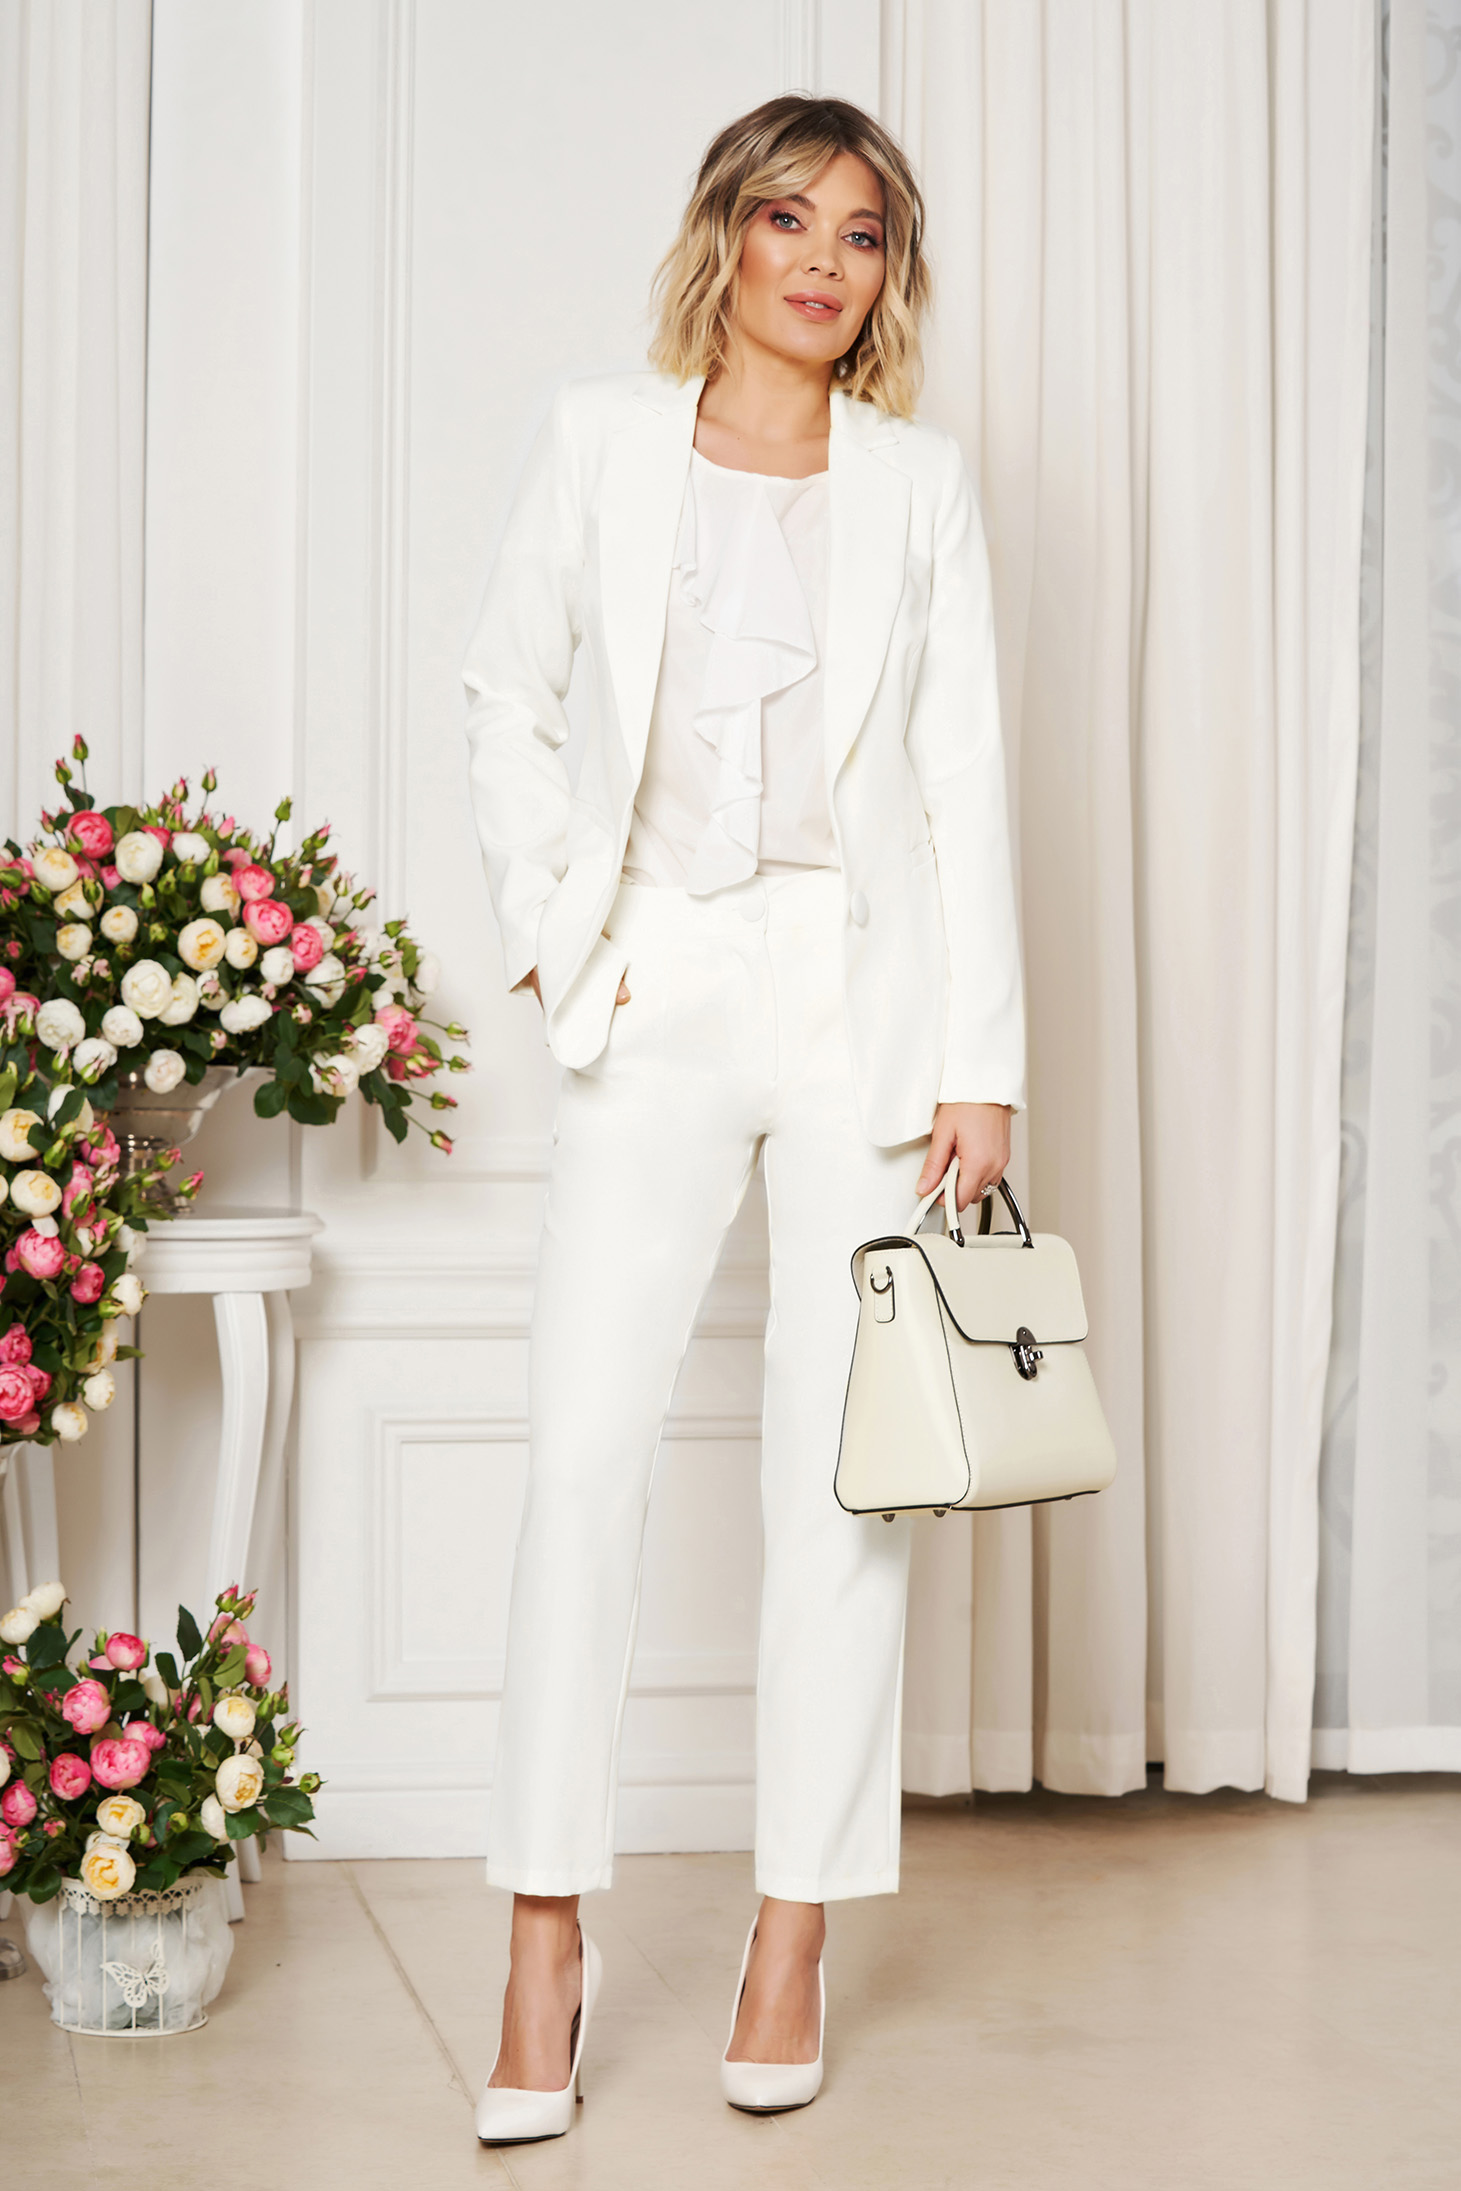 StarShinerS white office trousers with pockets medium waist slightly elastic fabric with straight cut